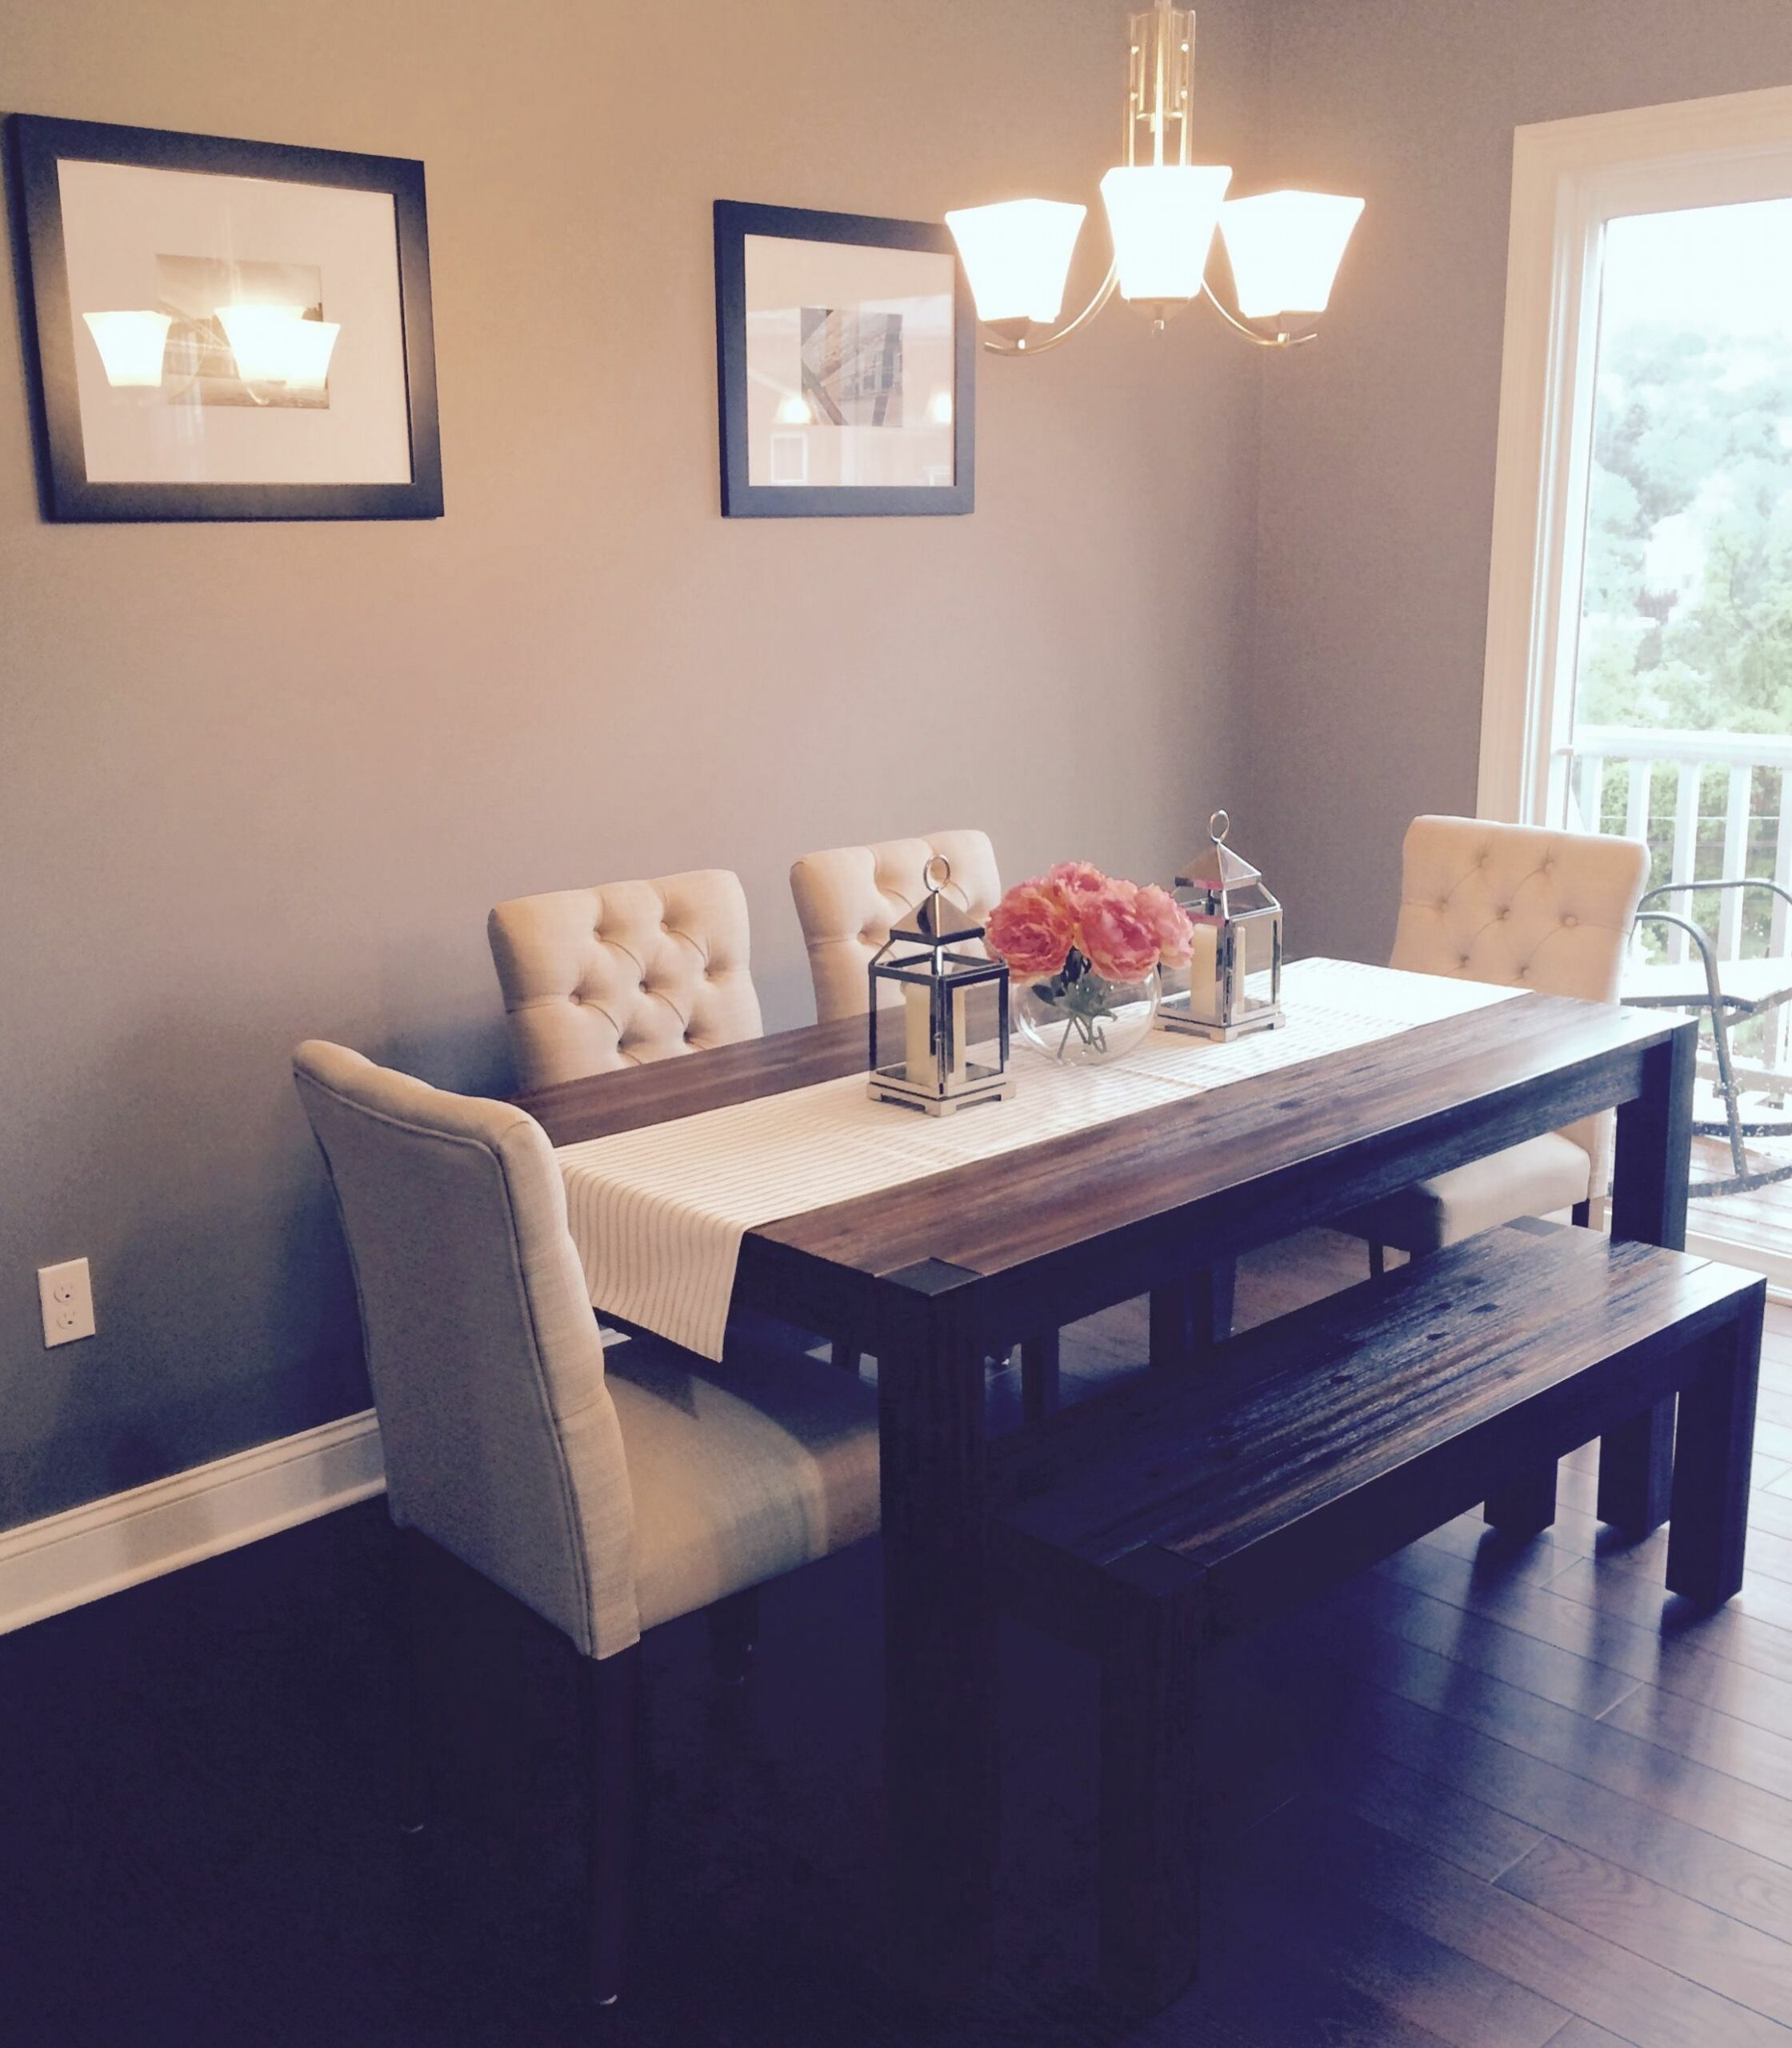 Dining room: Avondale (Macy's) table & bench with fabric chairs ...